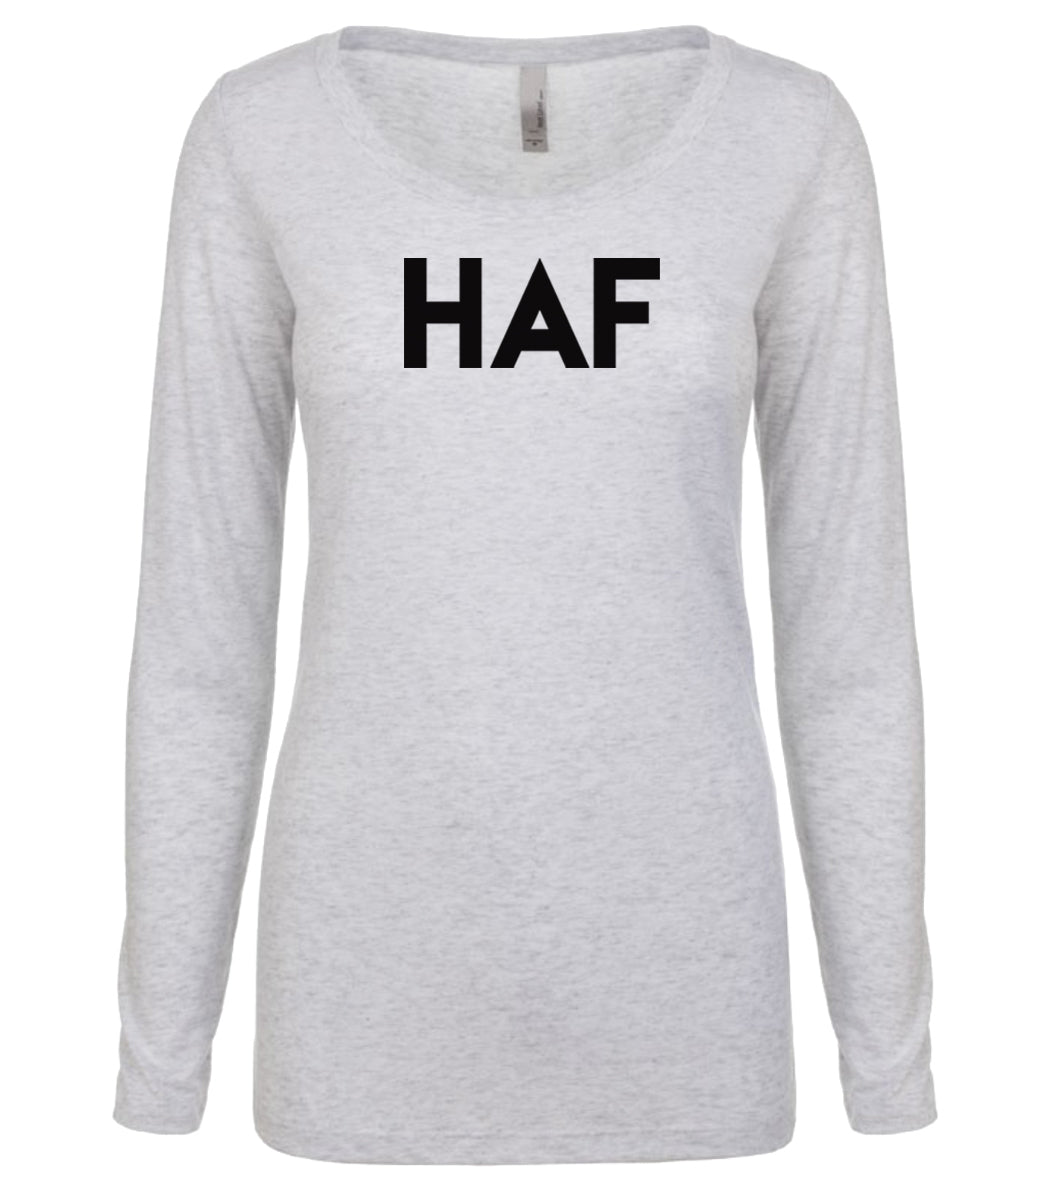 white HAF long sleeve scoop shirt for women